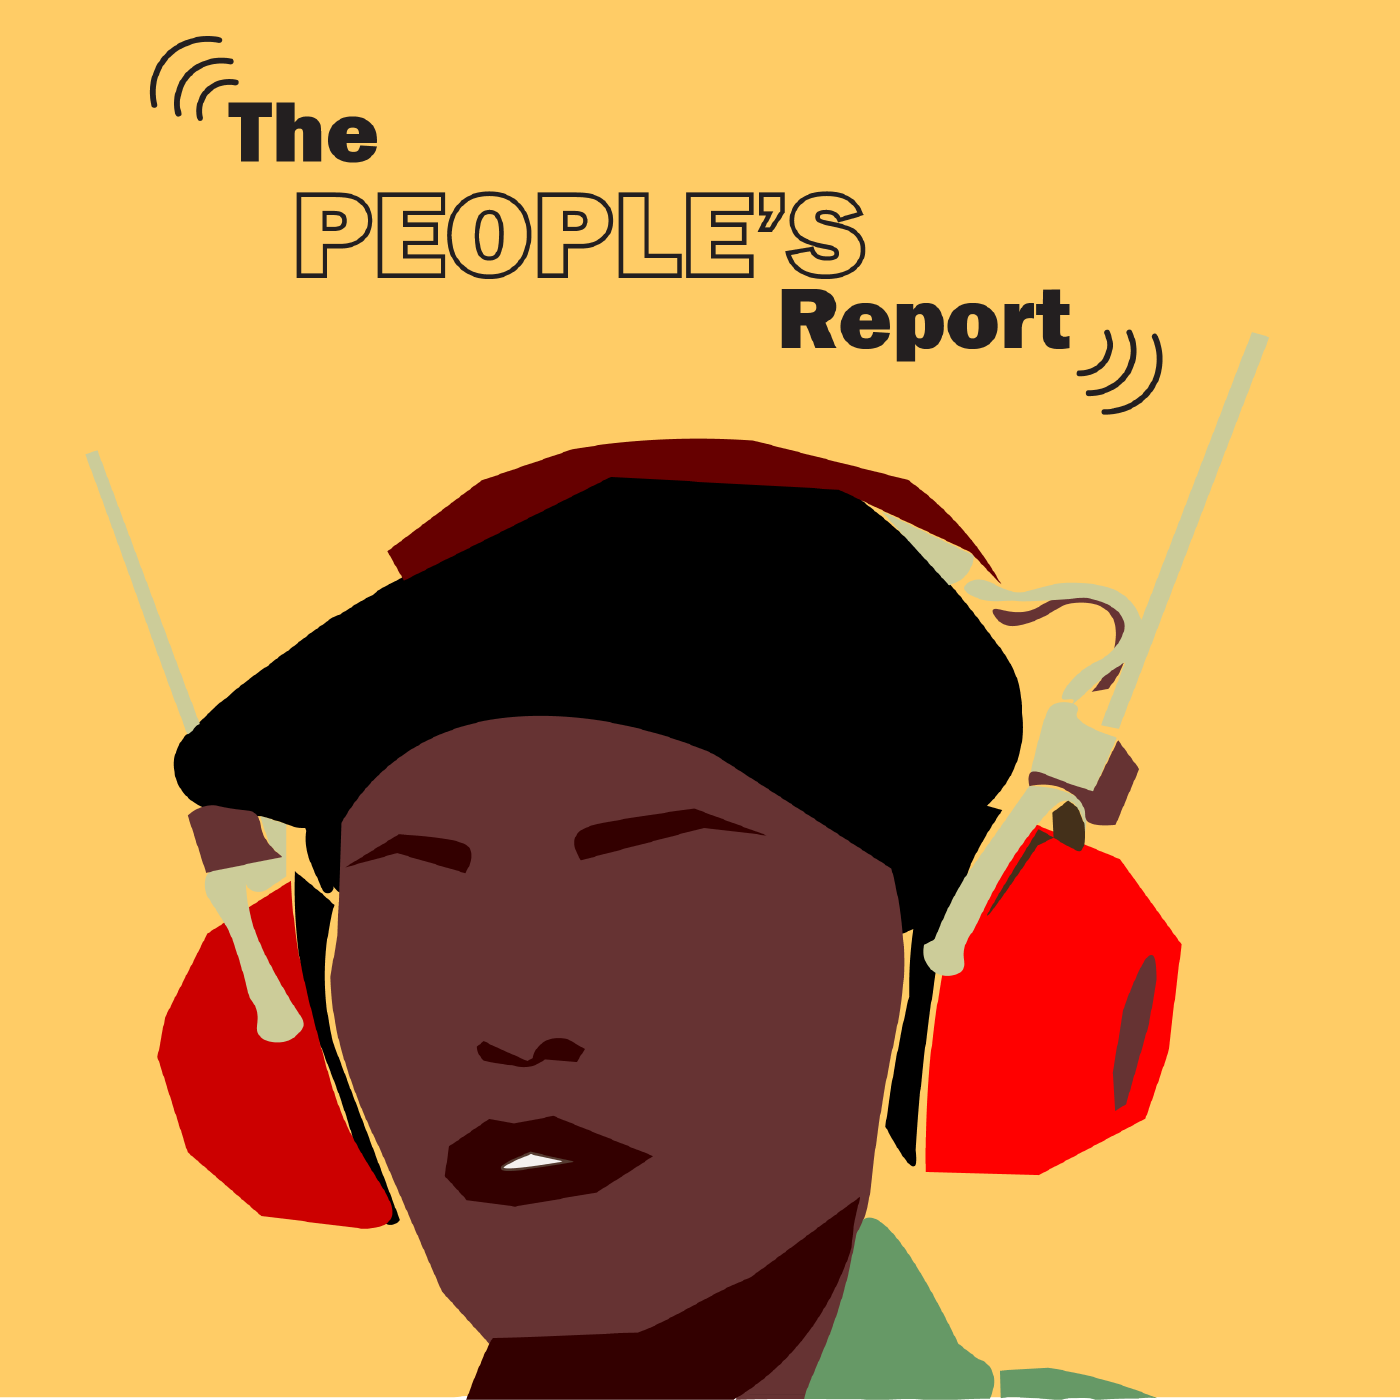 The People's Report